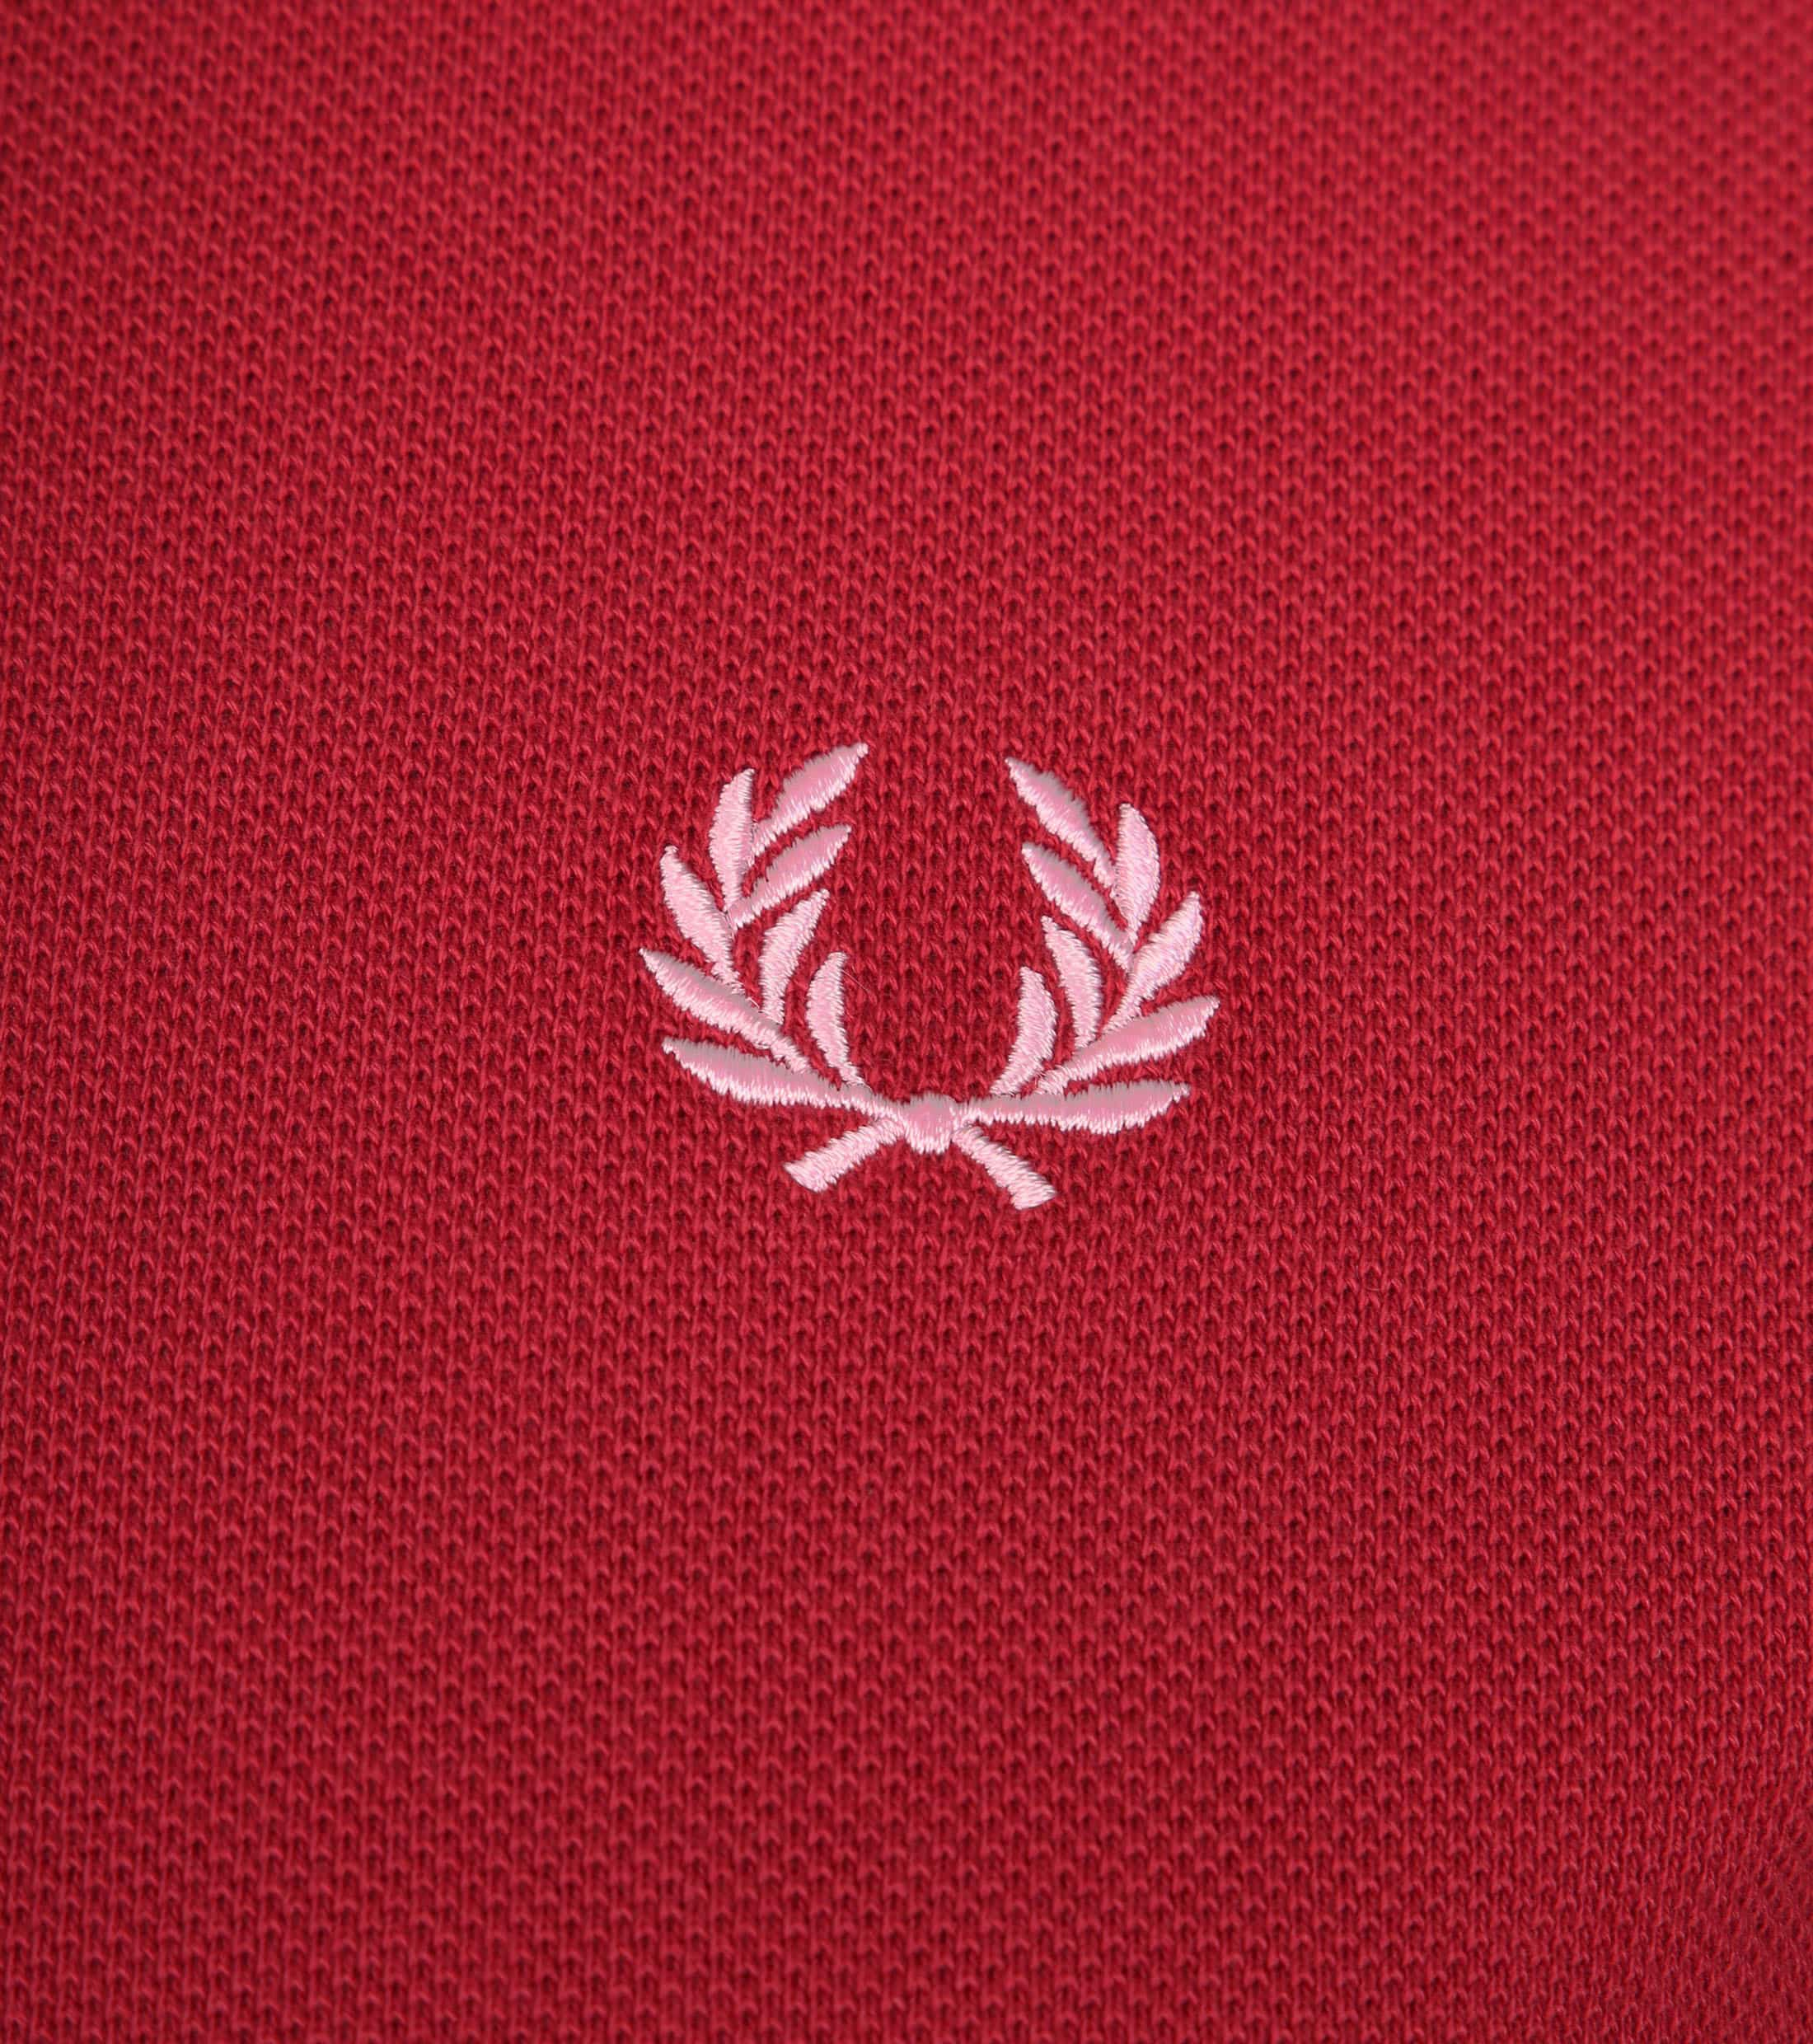 Fred Perry Poloshirt Rot 541 foto 1